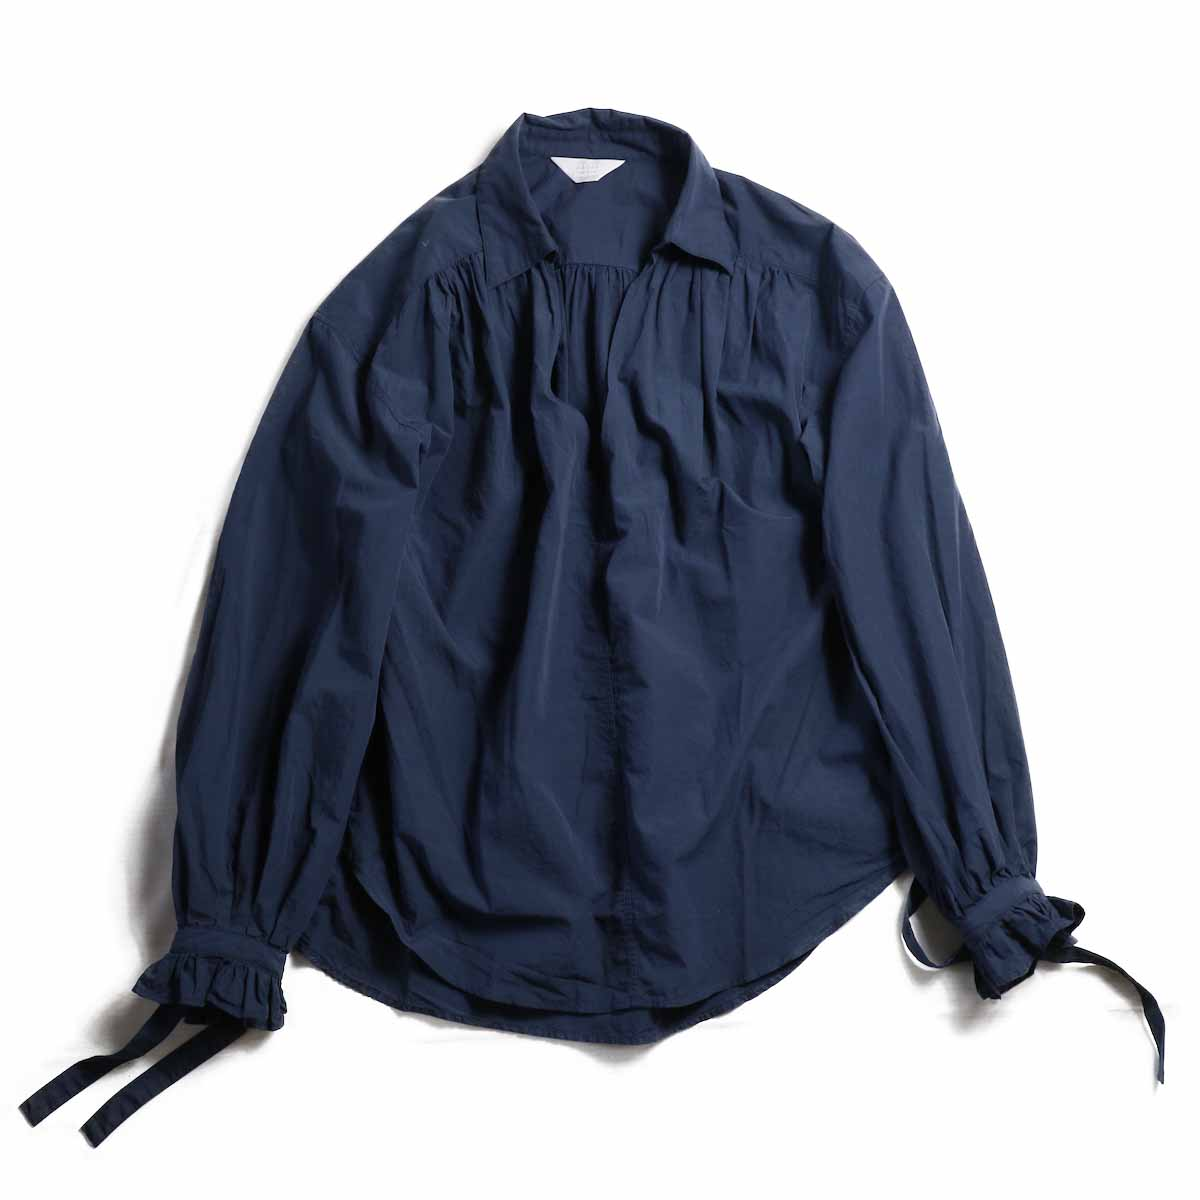 UNUSED Ladie's / US1519 Pullover shirt  -NAVY